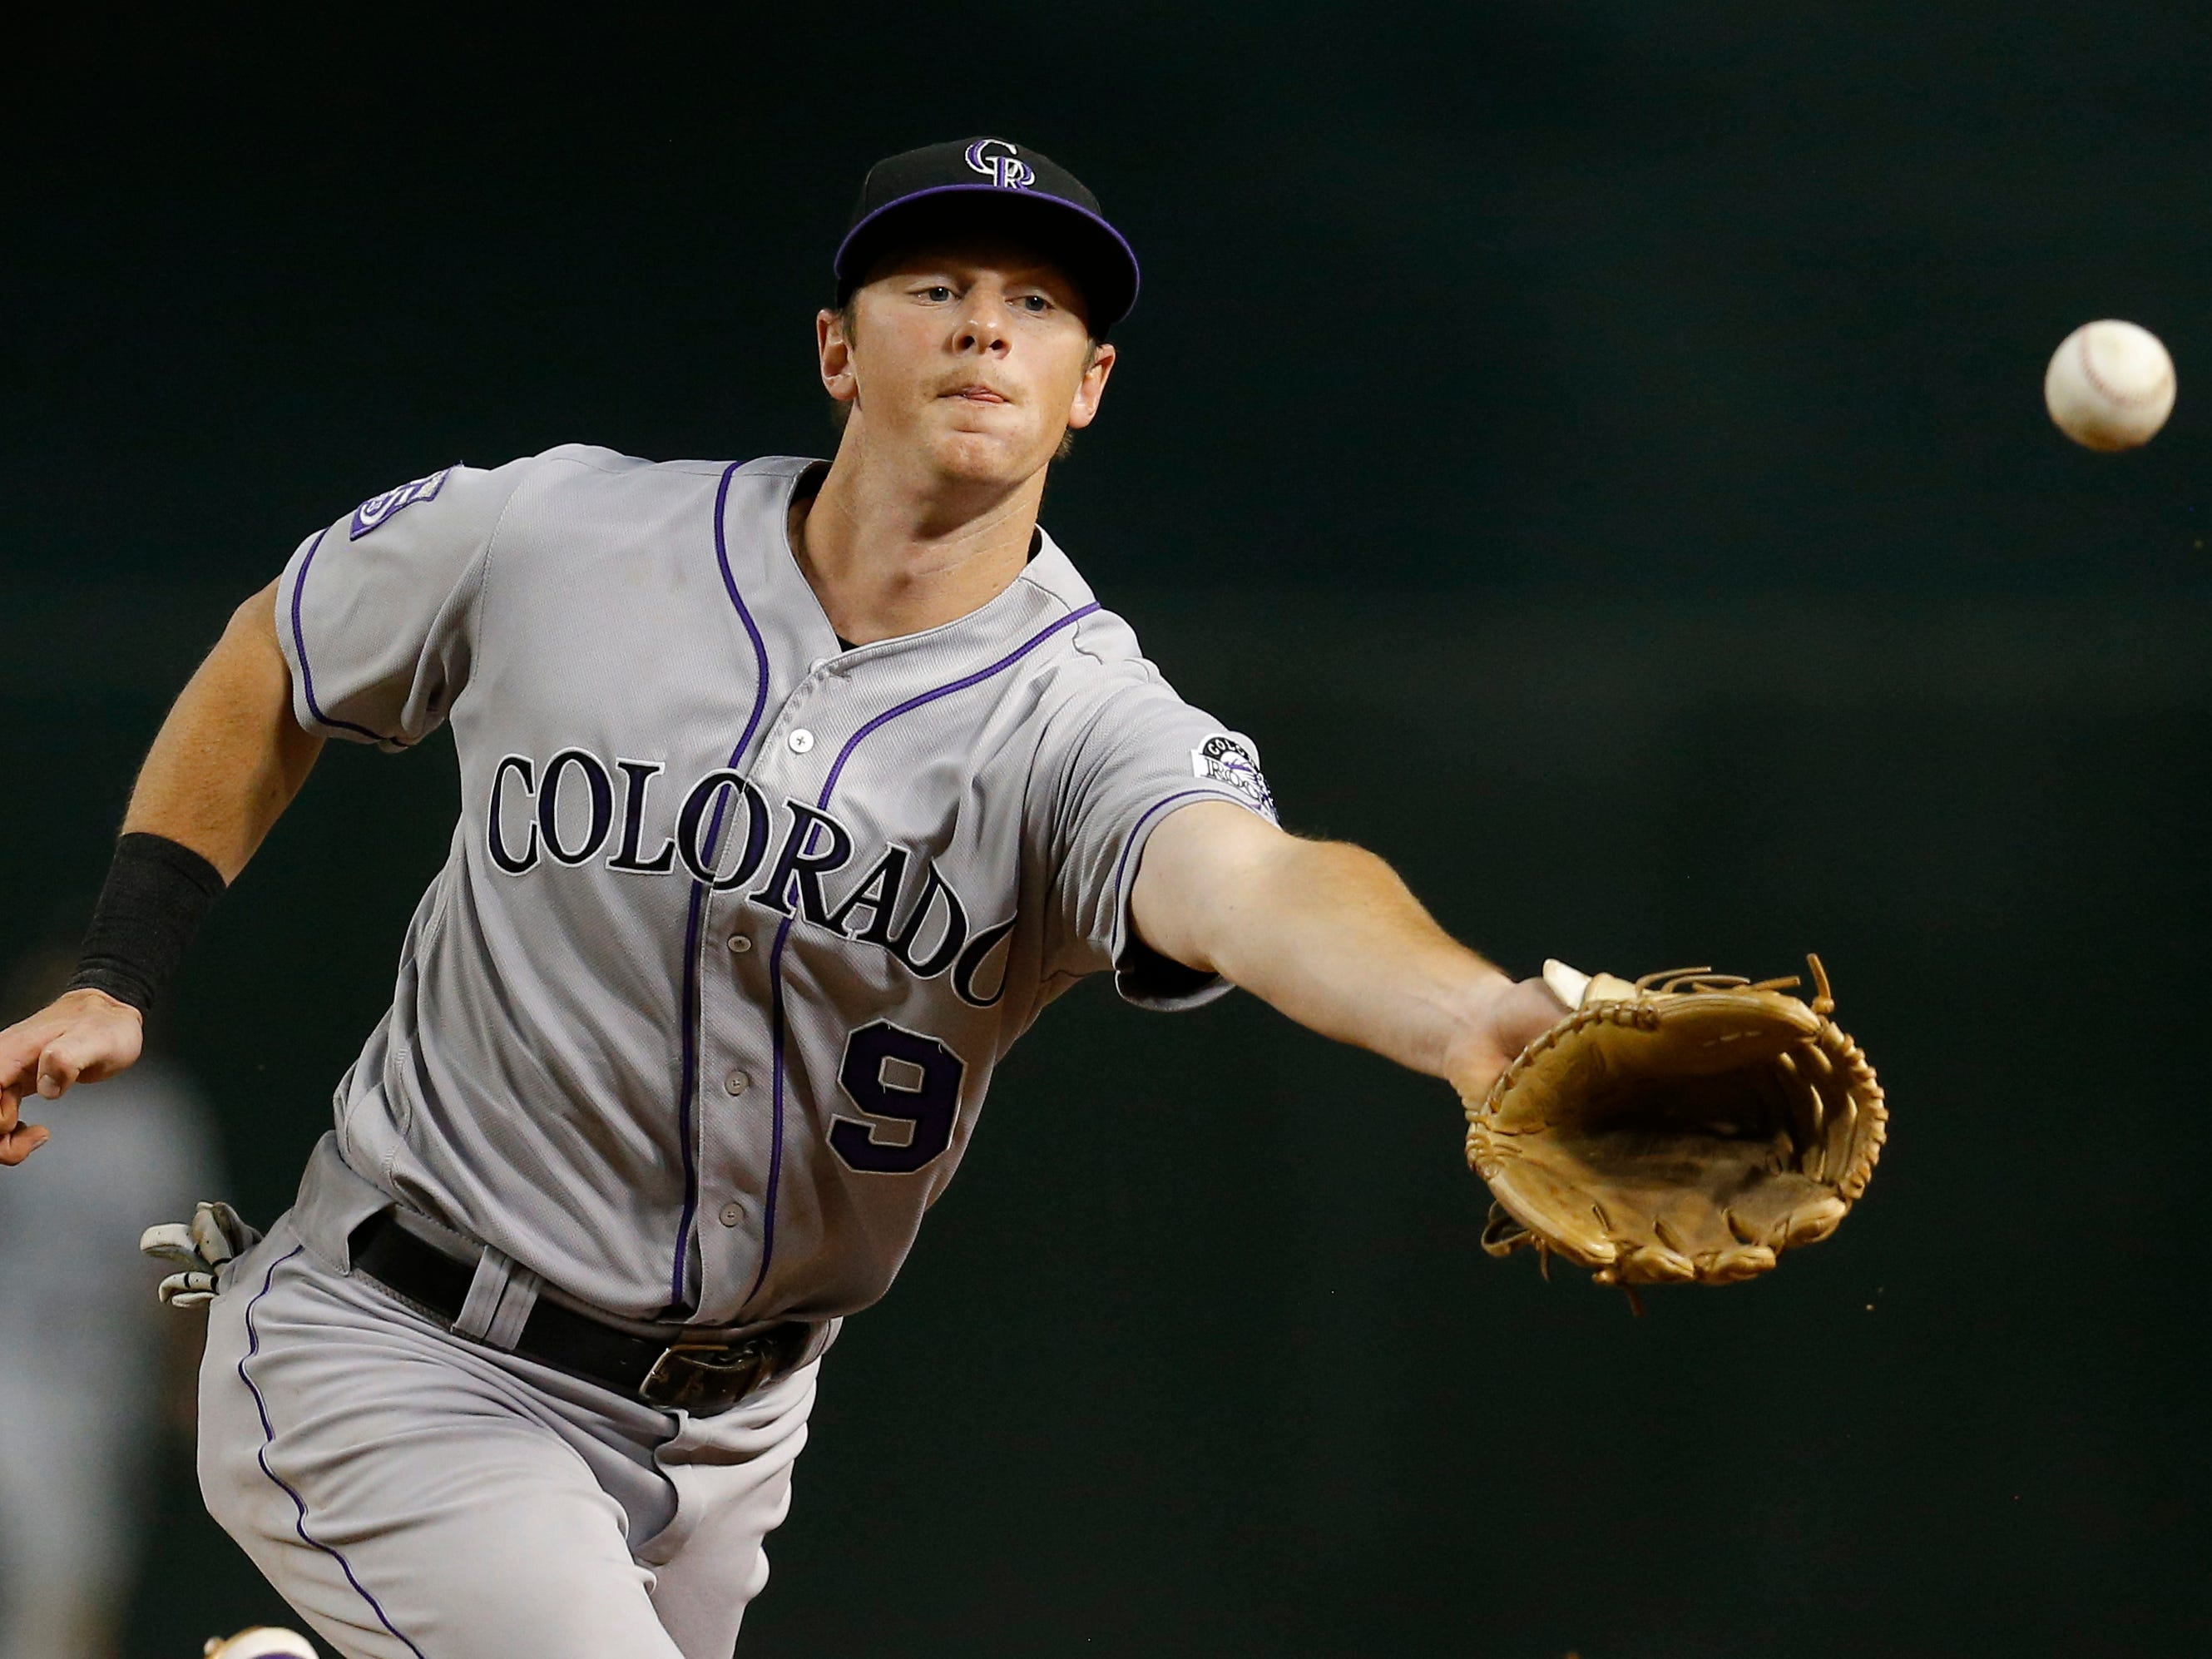 8. DJ LeMahieu, 2B, 30: The Birmingham Brother Rice graduate is the top second baseman on the free-agent market, and just won his second consecutive Gold Glove Award, and third overall. Prediction: Mets, four years, $50 million